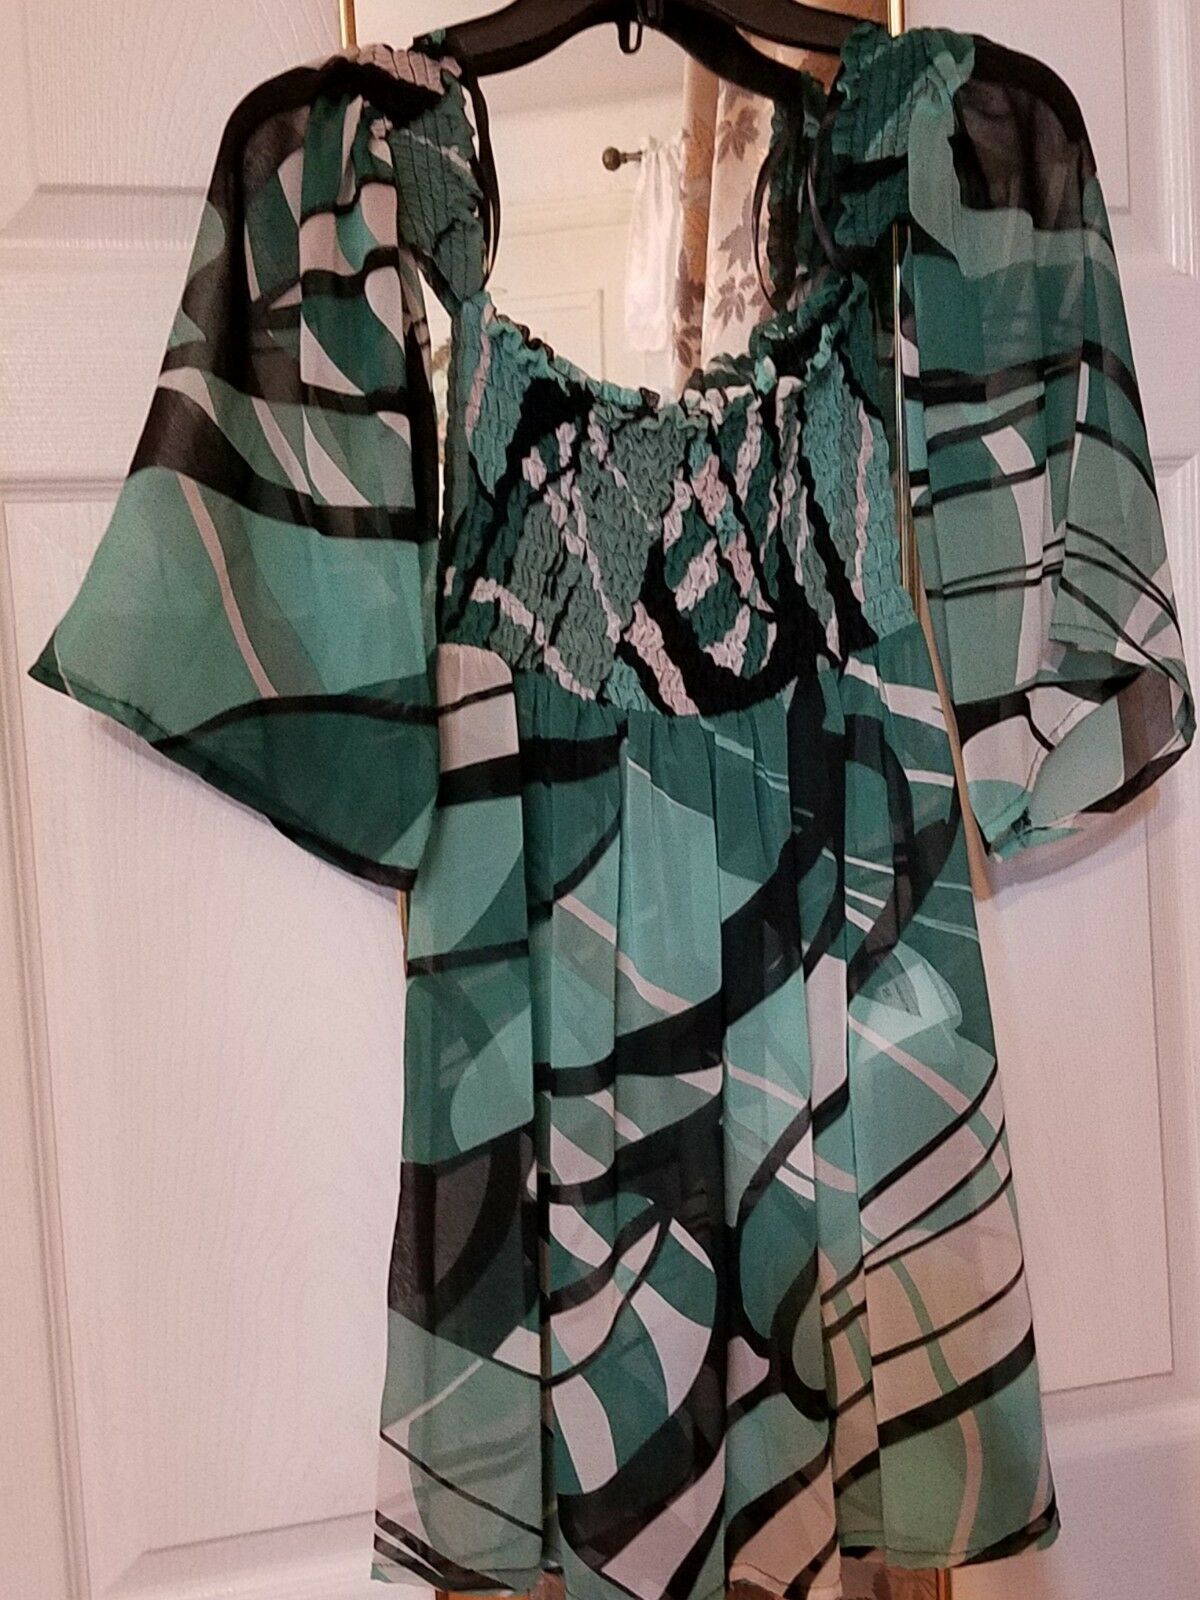 SANDRO FERRONE ROMA  BLOUSE SIZE M, new, with tags